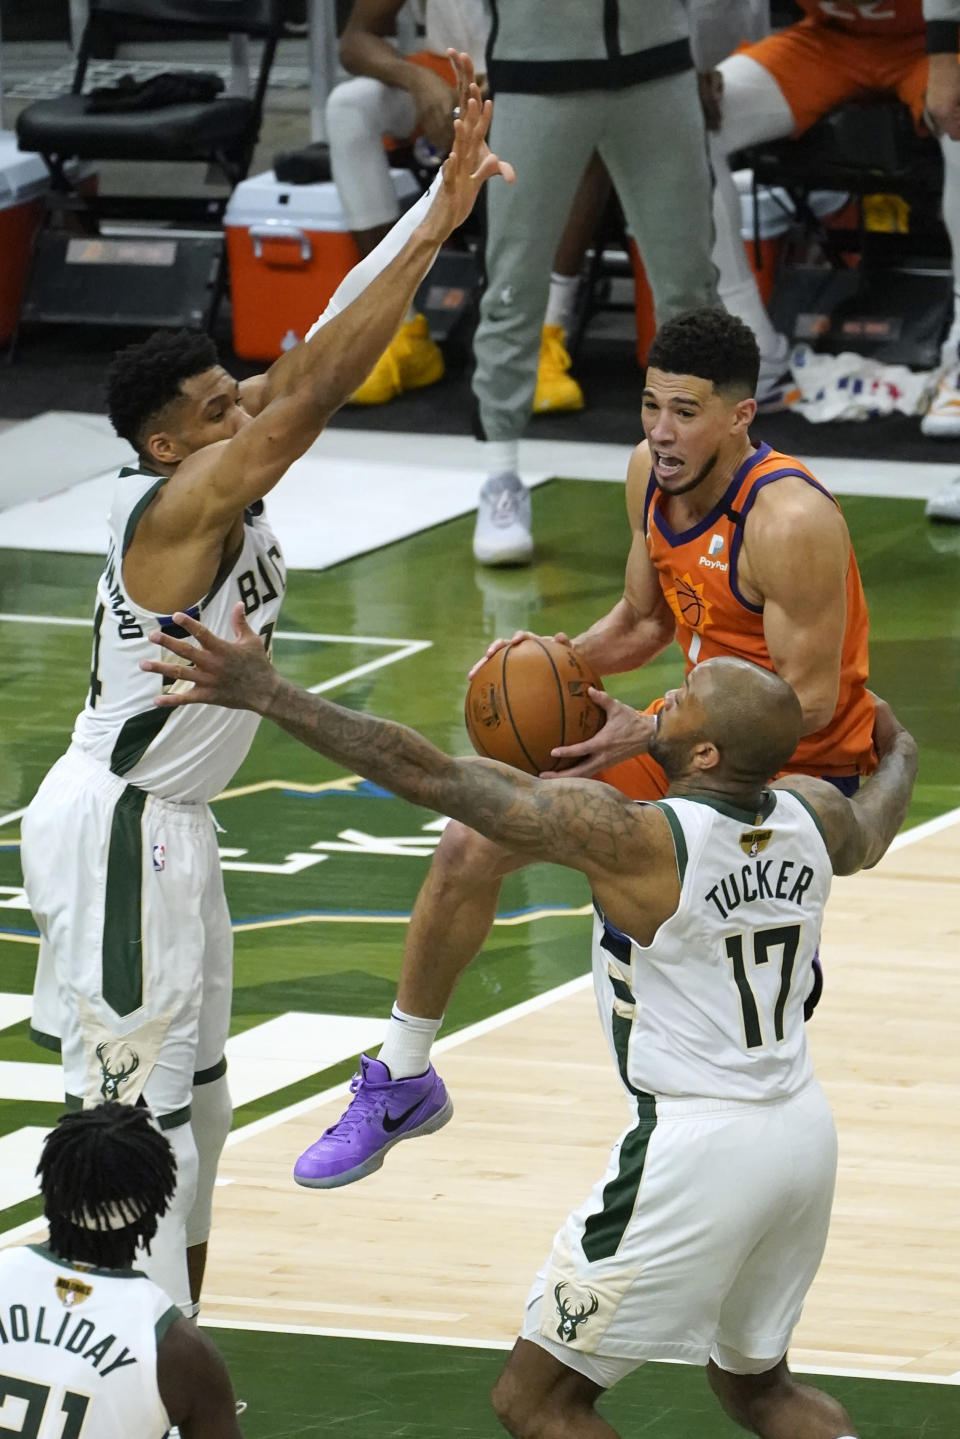 Phoenix Suns guard Devin Booker, center, drives between Milwaukee Bucks forward Giannis Antetokounmpo, left, and forward P.J. Tucker (17) during the second half of Game 4 of basketball's NBA Finals in Milwaukee, Wednesday, July 14, 2021. (AP Photo/Paul Sancya)